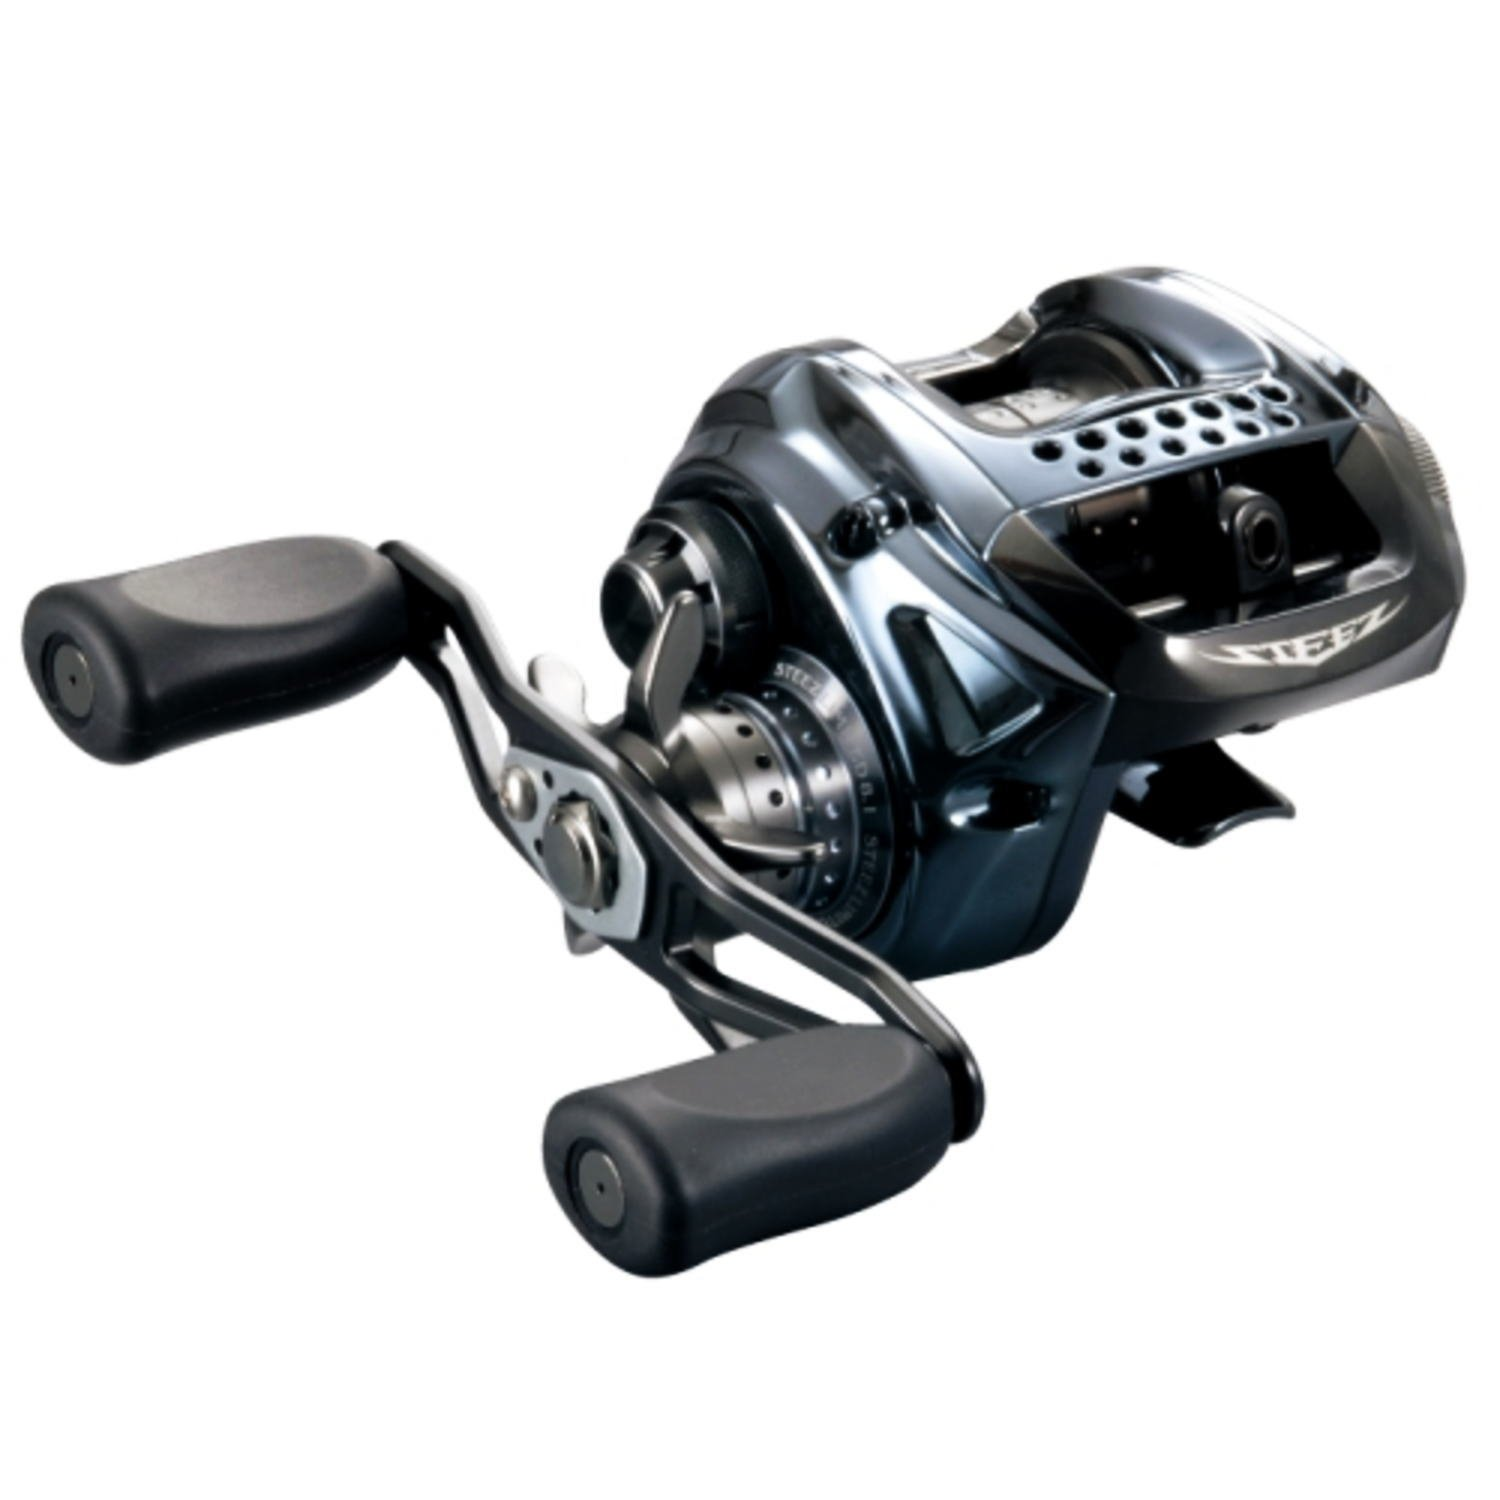 Daiwa 14 Steez Limited SV 105XH Right Hand Baitcasting Reel